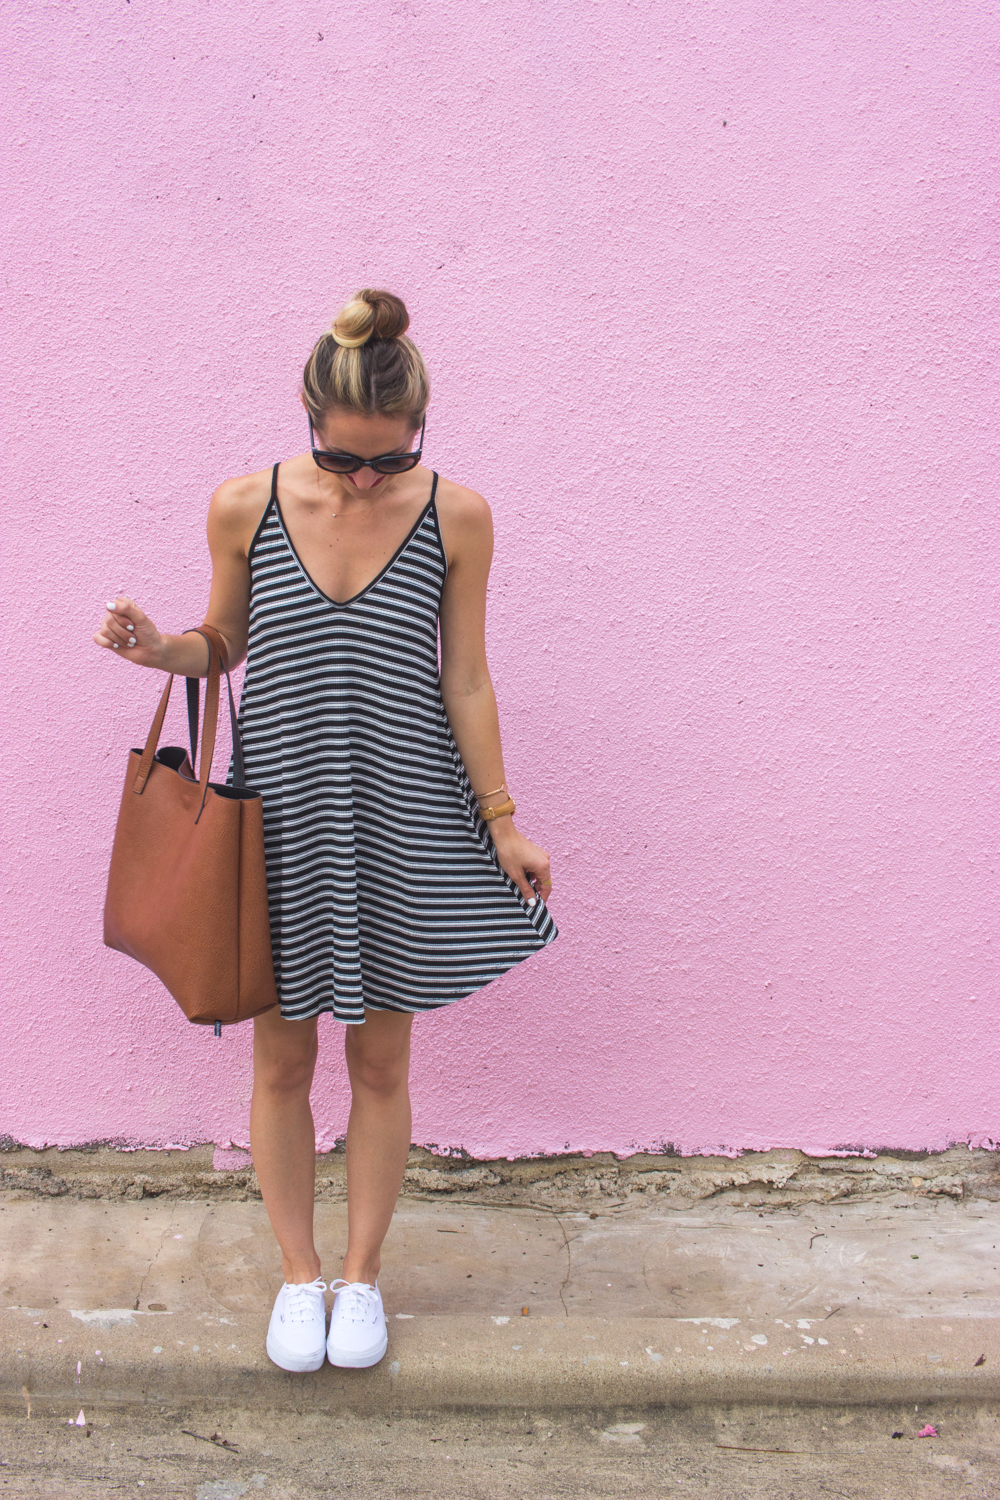 livvyland-blog-olivia-watson-austin-texas-fashion-blogger-pink-wall-coffee-run-summer-lace-up-back-striped-sun-dress-vans-sneakers-7